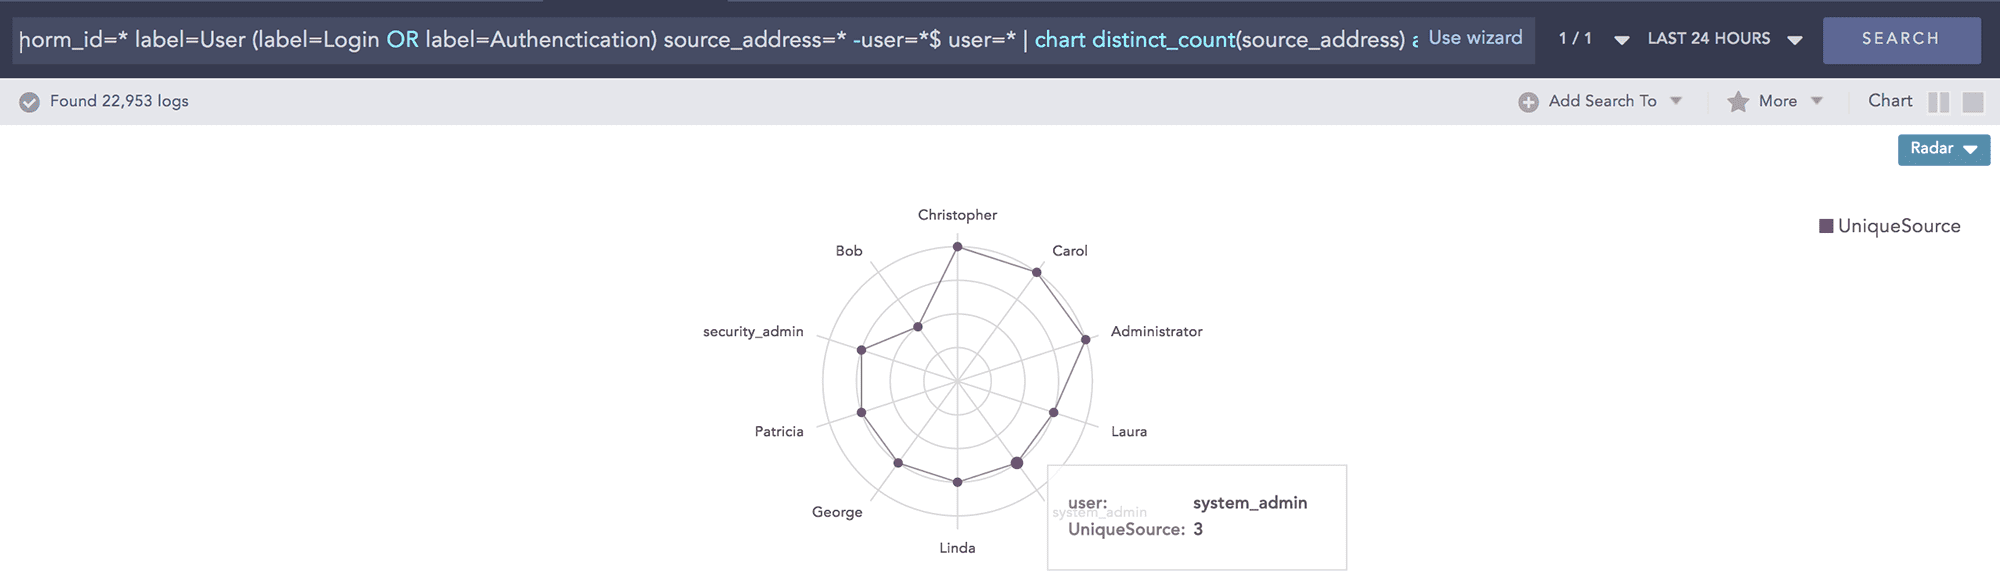 Users Authentication from Multiple Sources LogPoint Dashboard